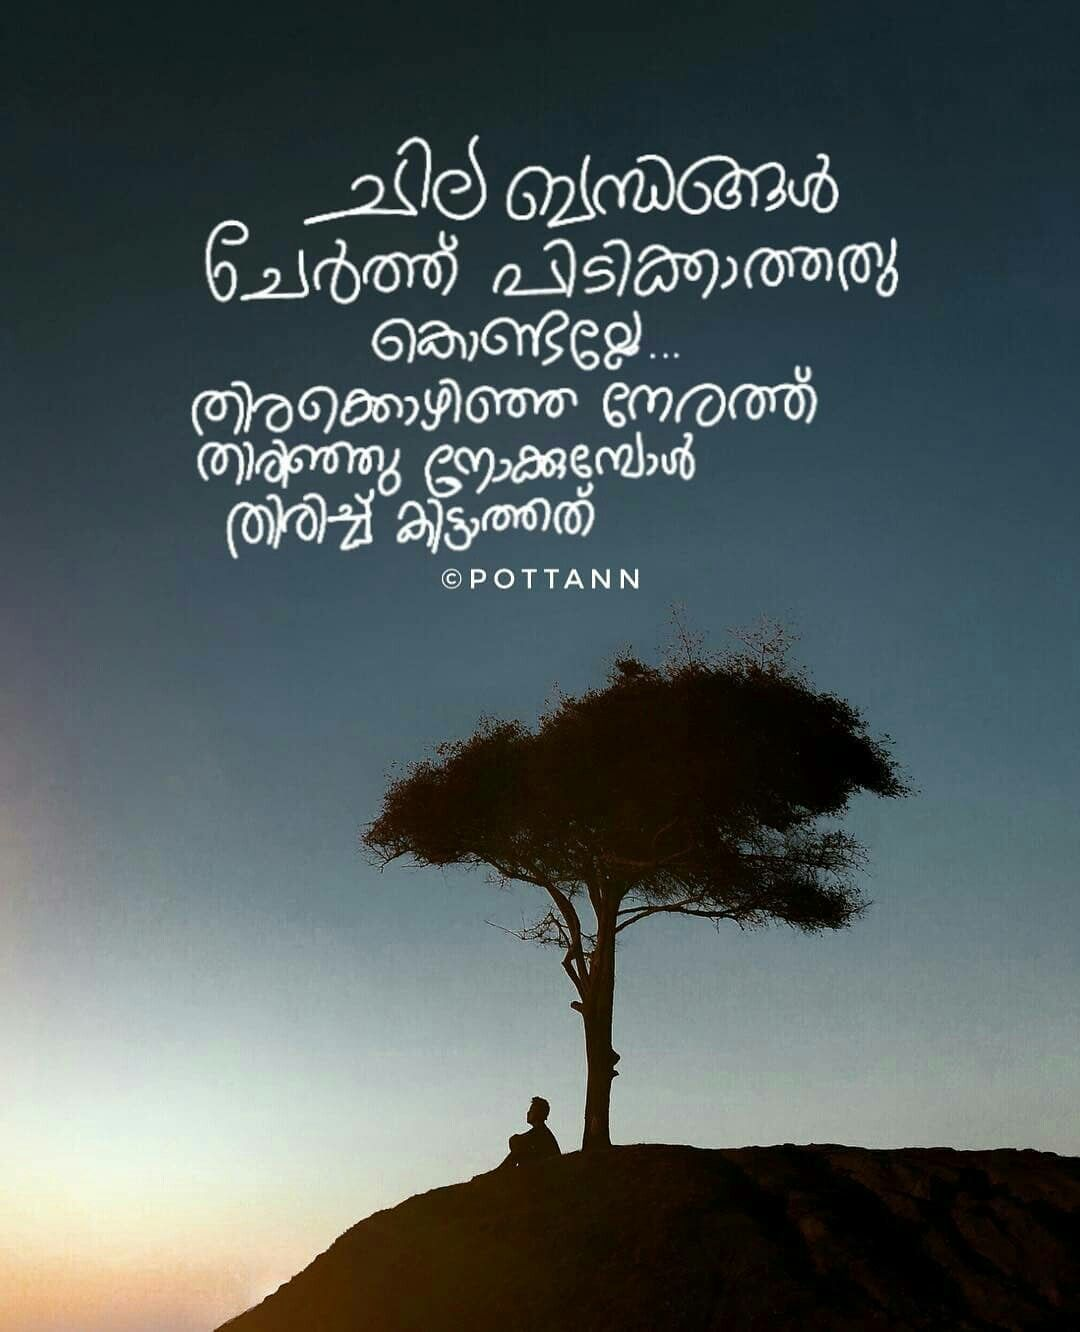 Pin By Beena Vinsu On Mind Malayalam Quotes Words Quotes Feelings Quotes